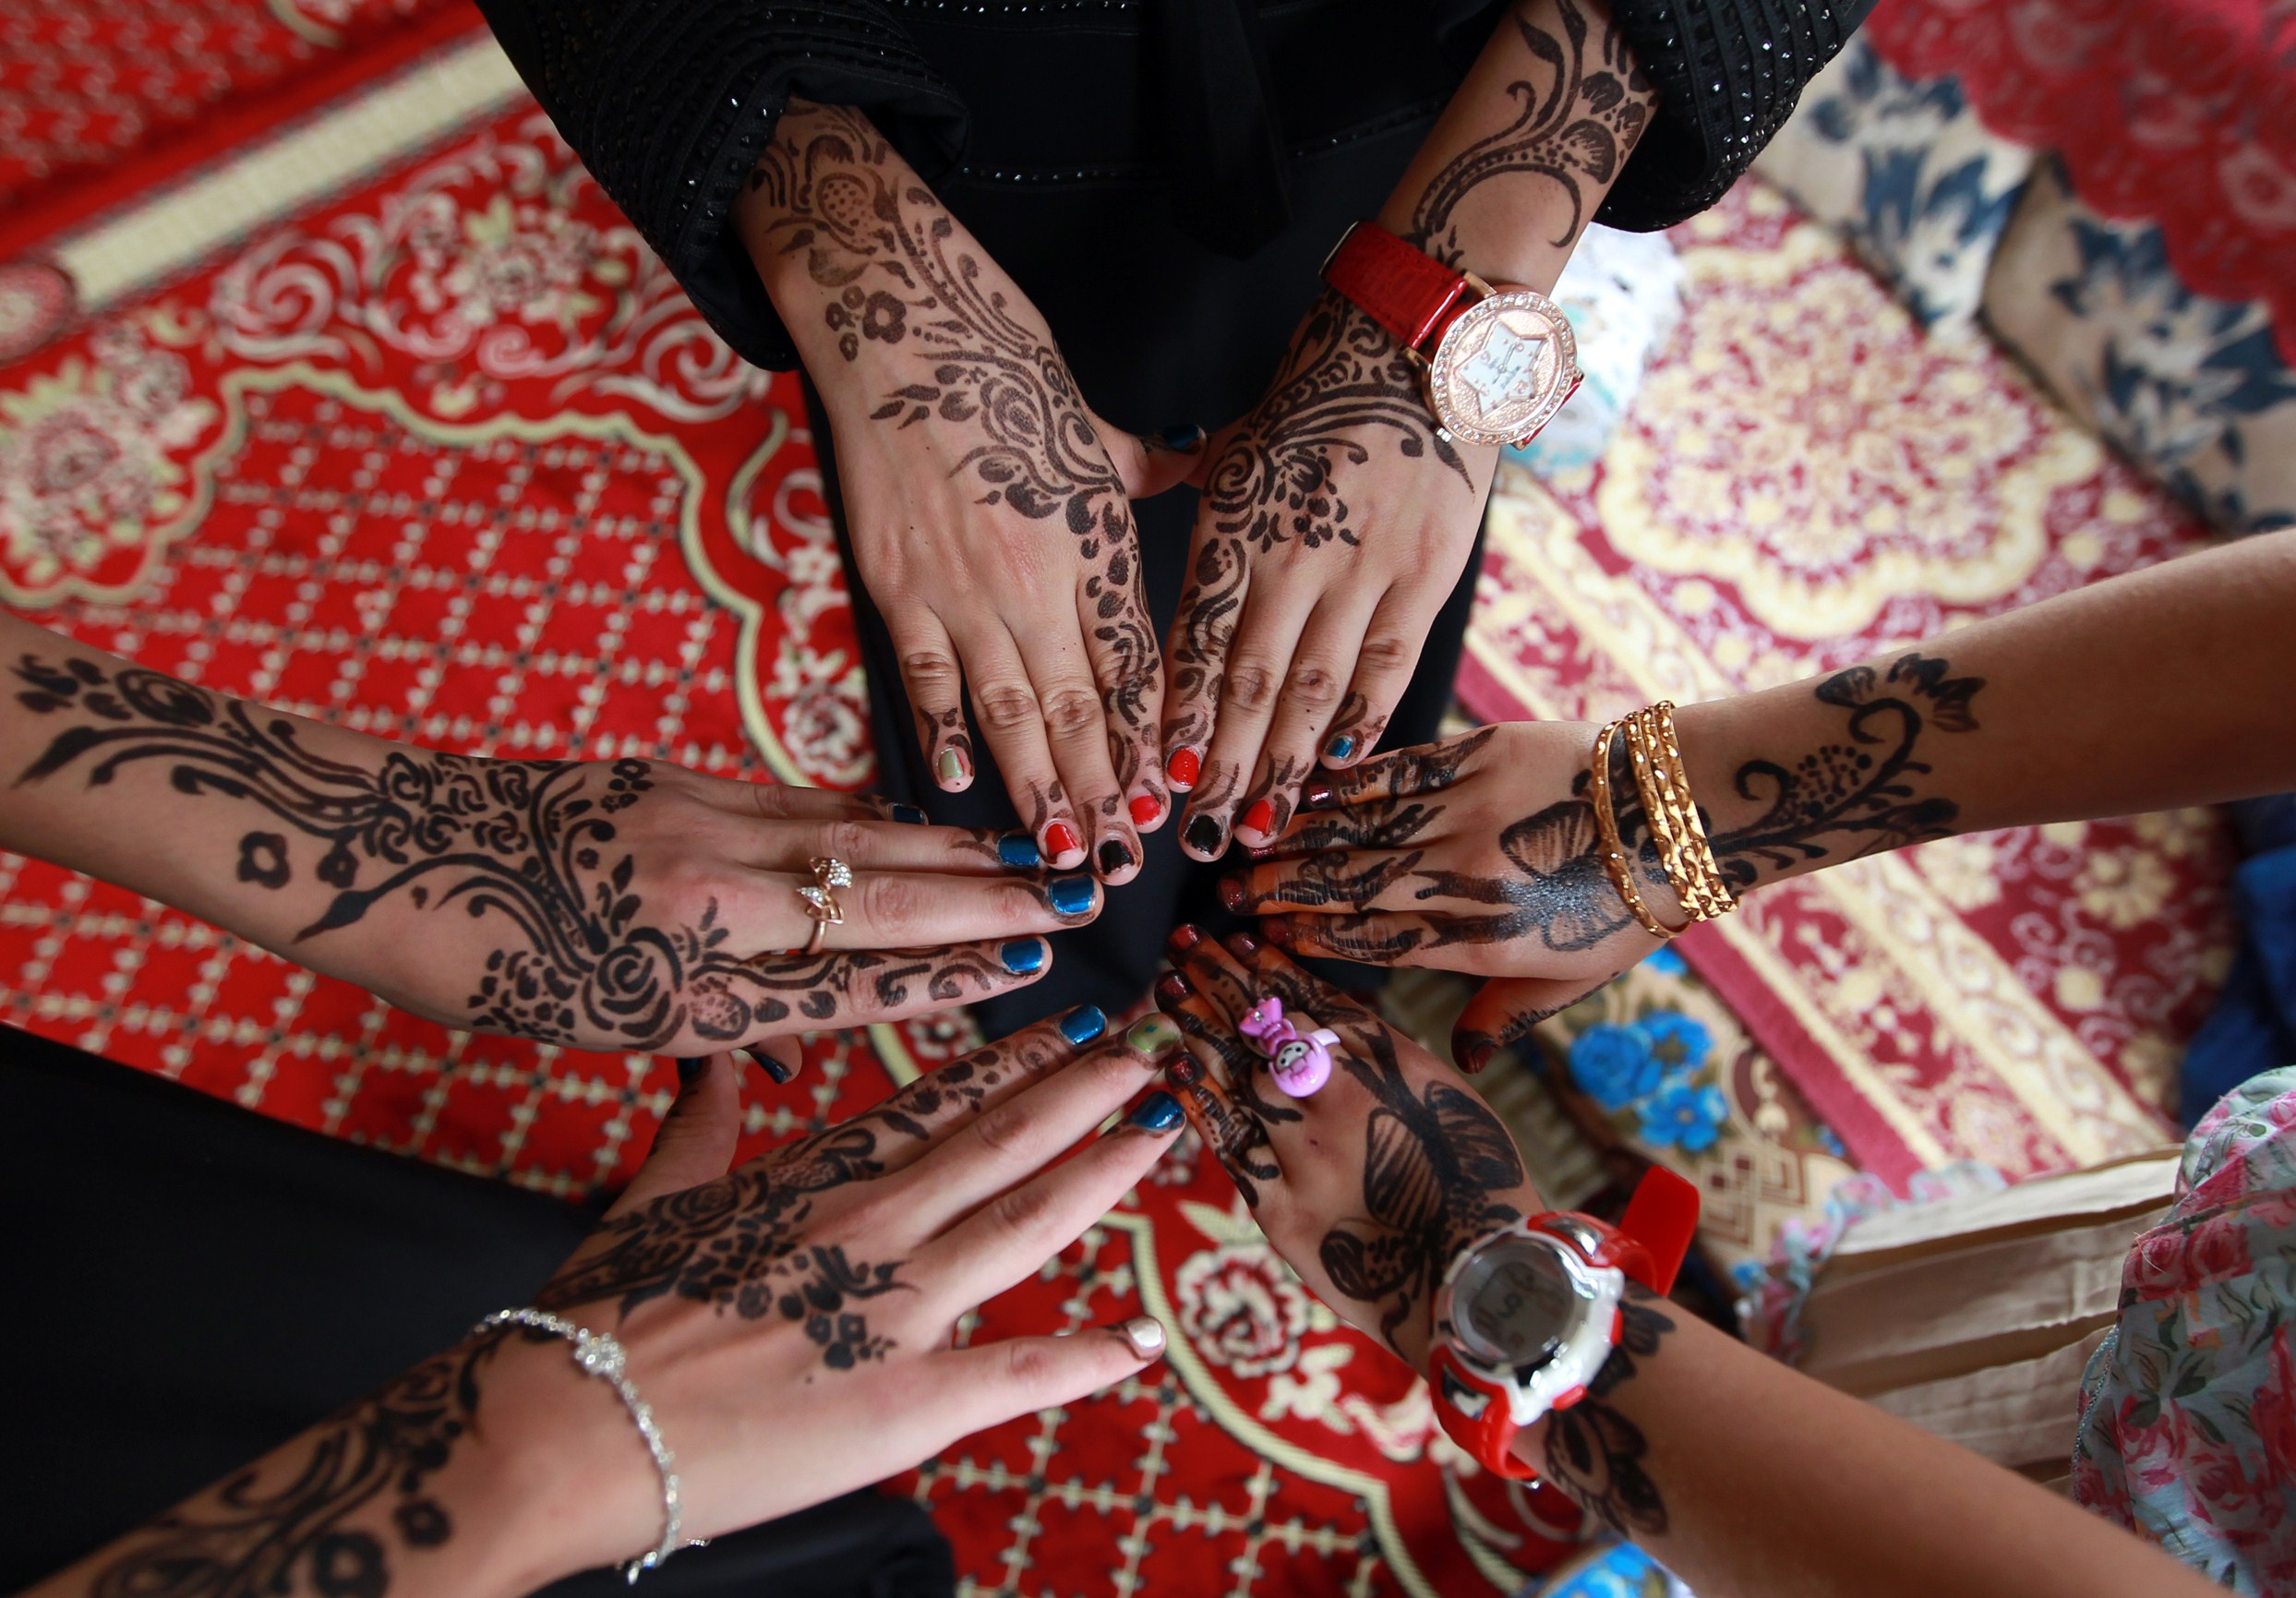 b8a743272 10 Photos That Will Totally Make You Want To Get A Henna Tattoo This Summerx